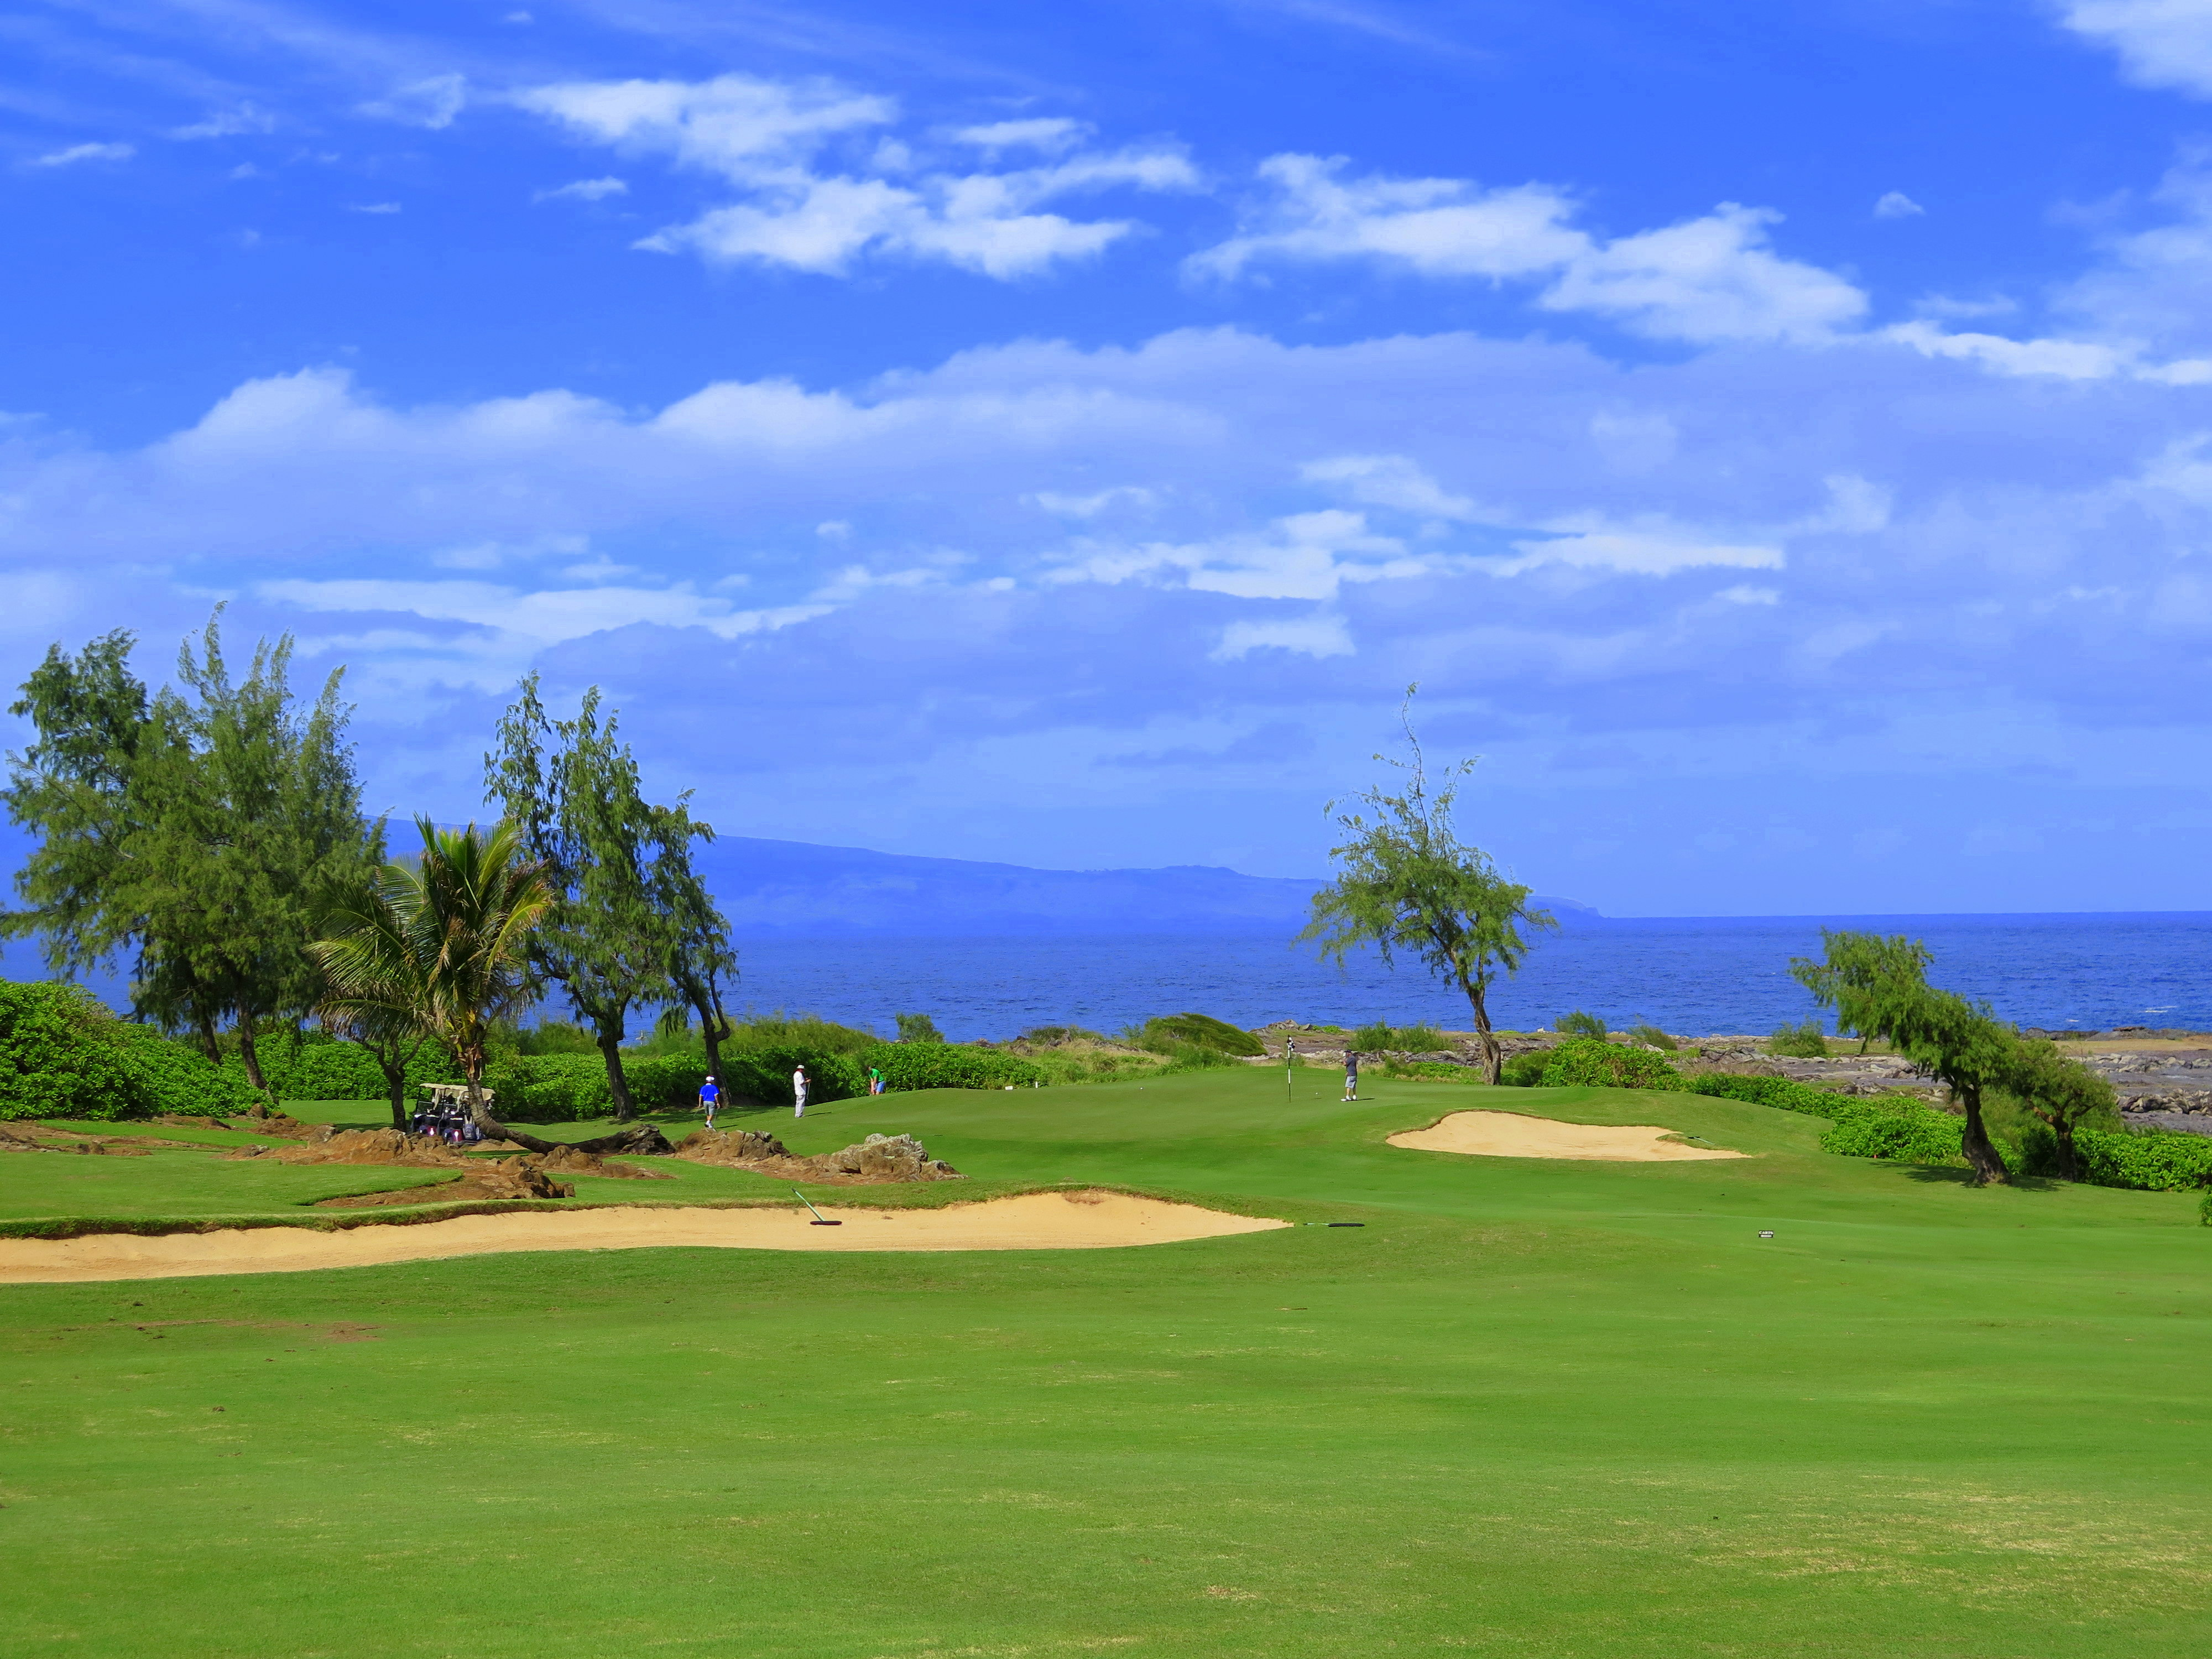 Hole number four on the Bay Course at Kapalua is a tricky par four with lovely views of the ocean and the island of Molokai.